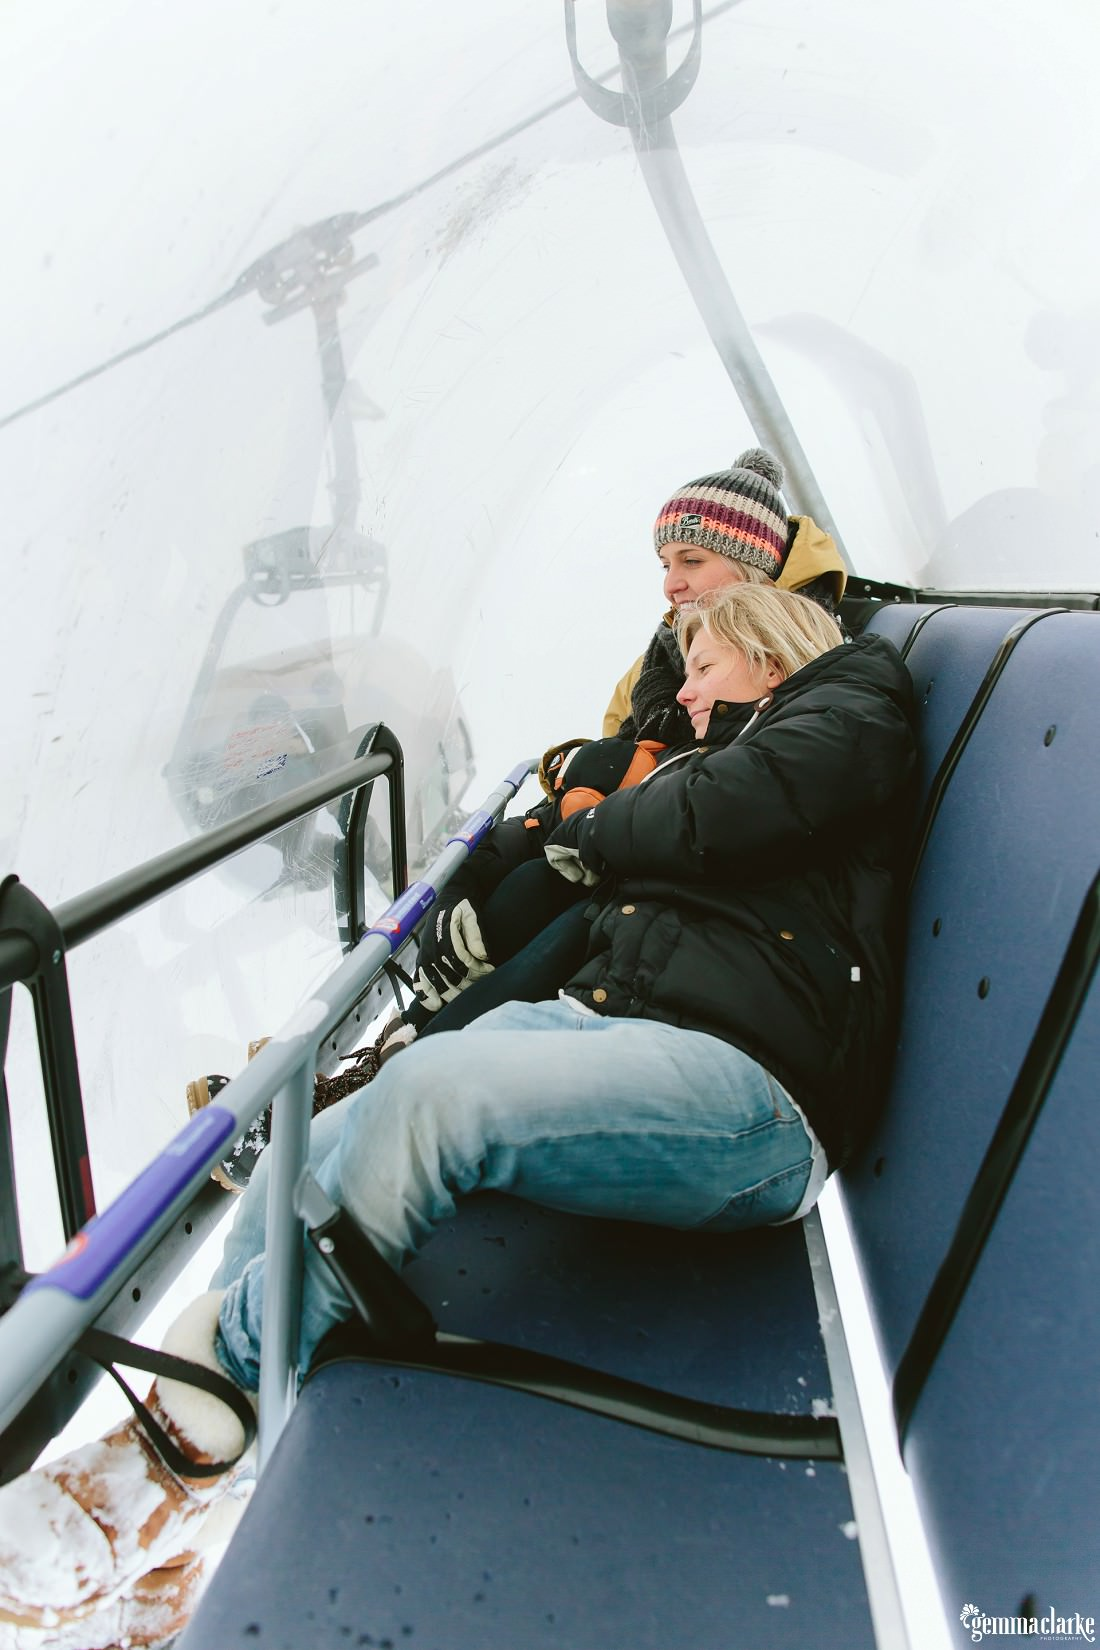 A smiling couple sit close together on a ski lift